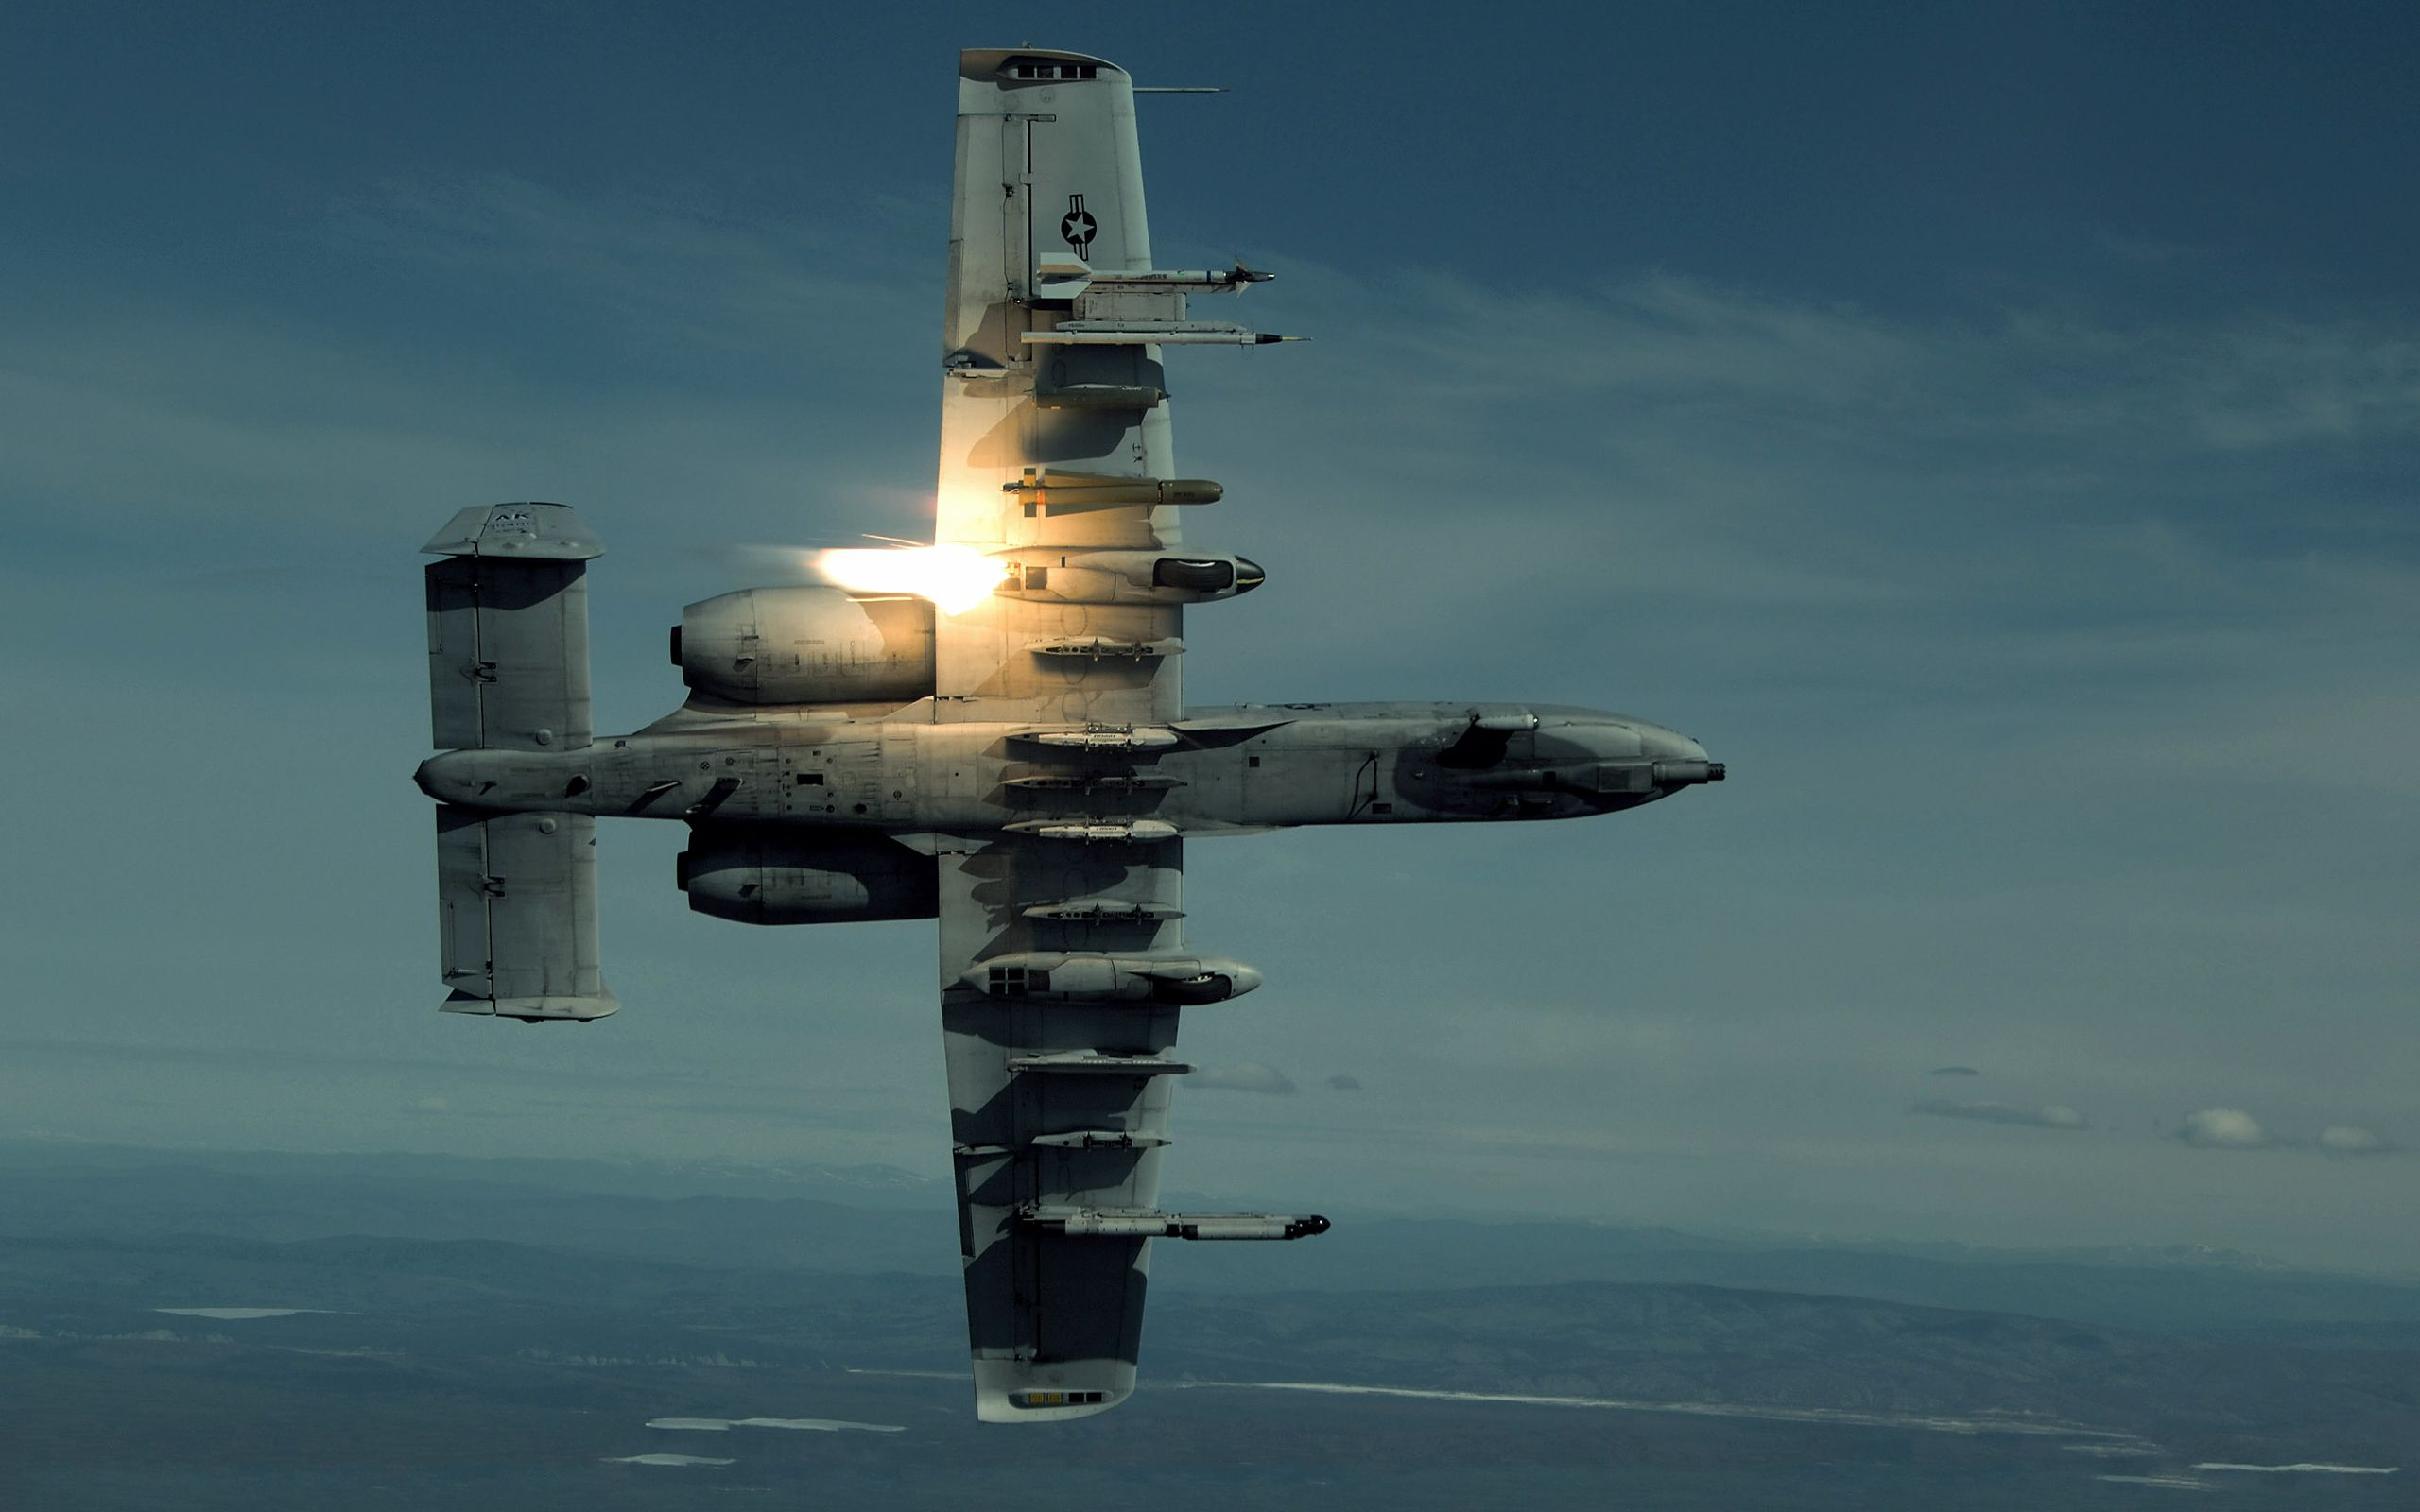 Aircraft Military Airplanes Flares A 10 Thunderbolt Ii Military Aircraft Fighter Jets Jet Aircraft